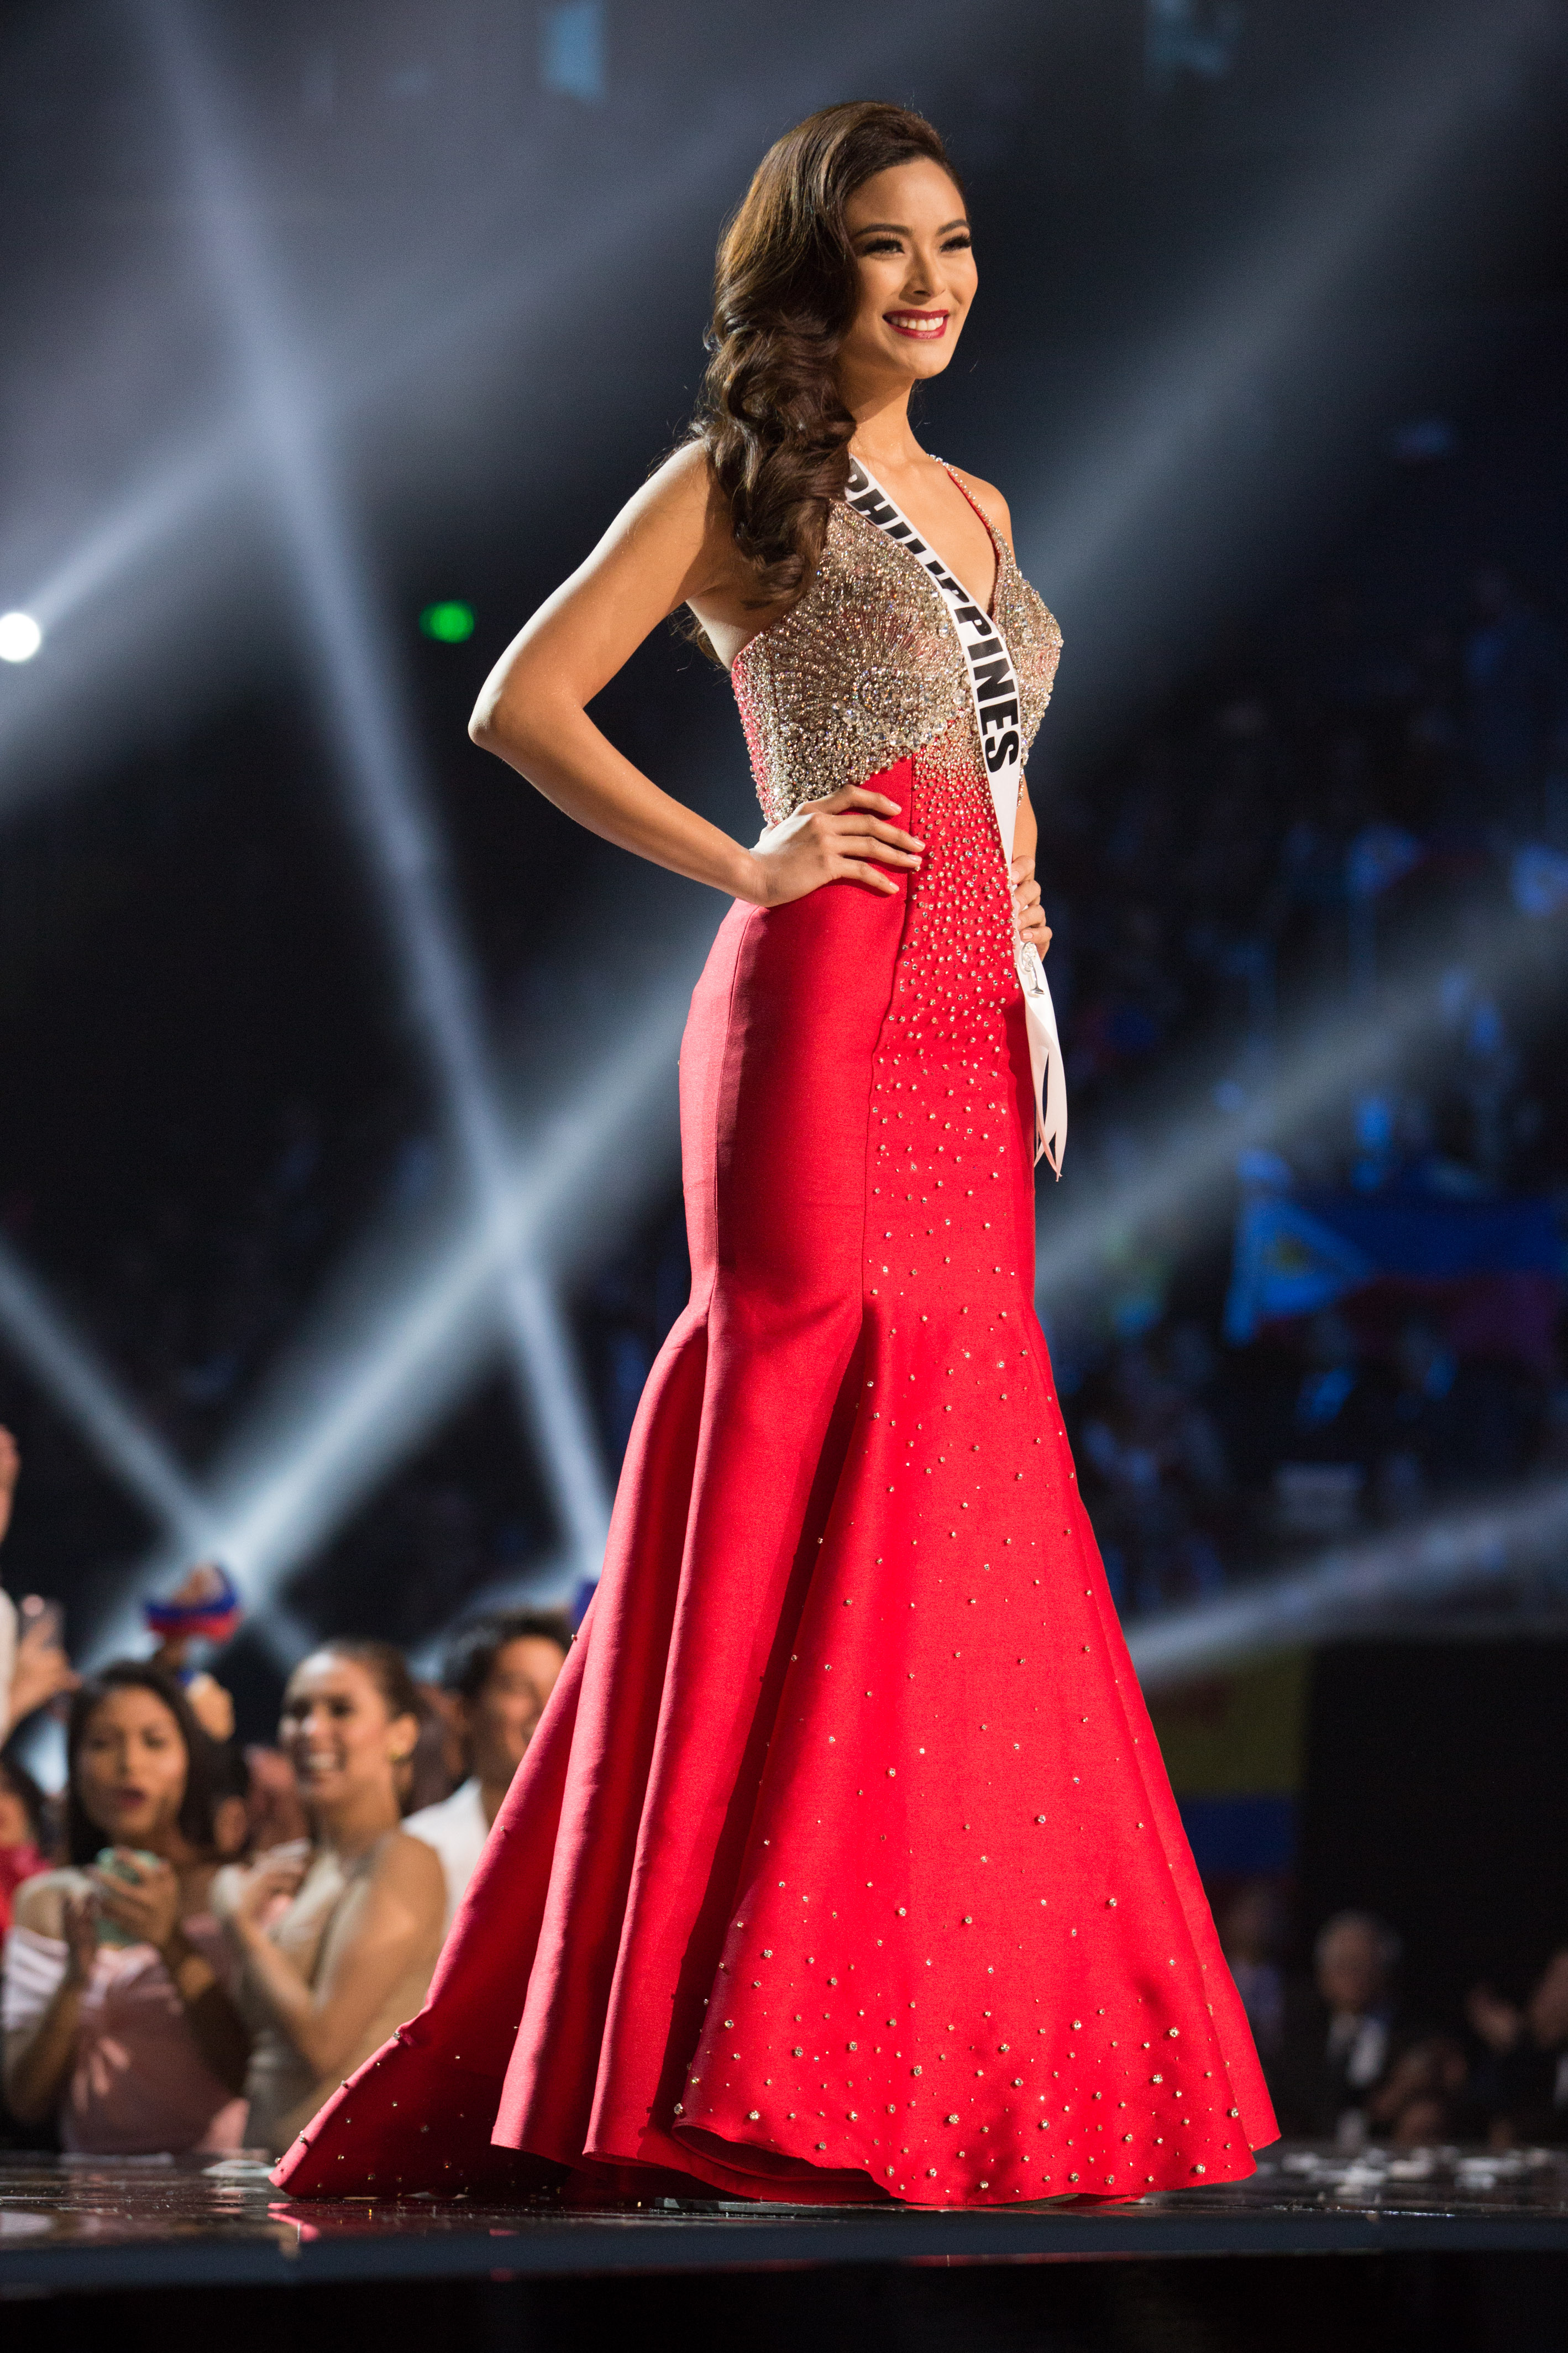 red ball gowns in the philippines